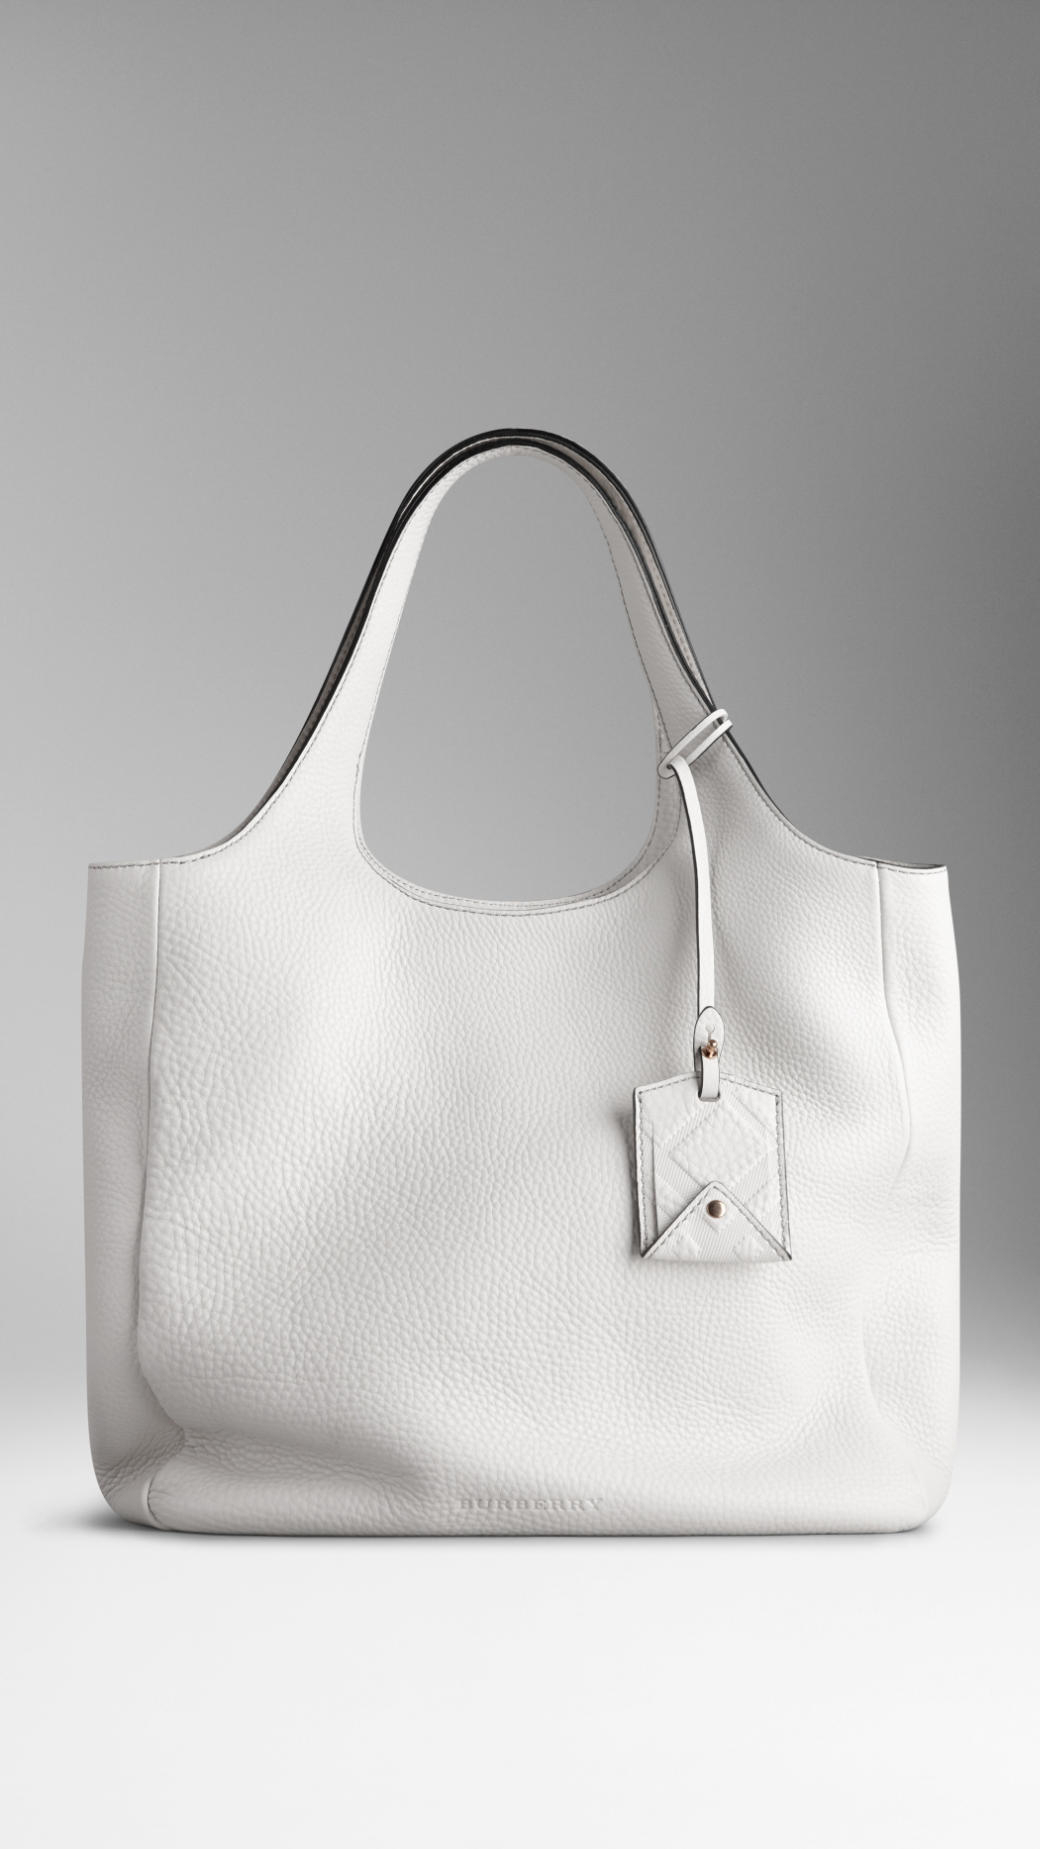 Lyst - Burberry Grainy Leather Shopper in White 520c4516478af